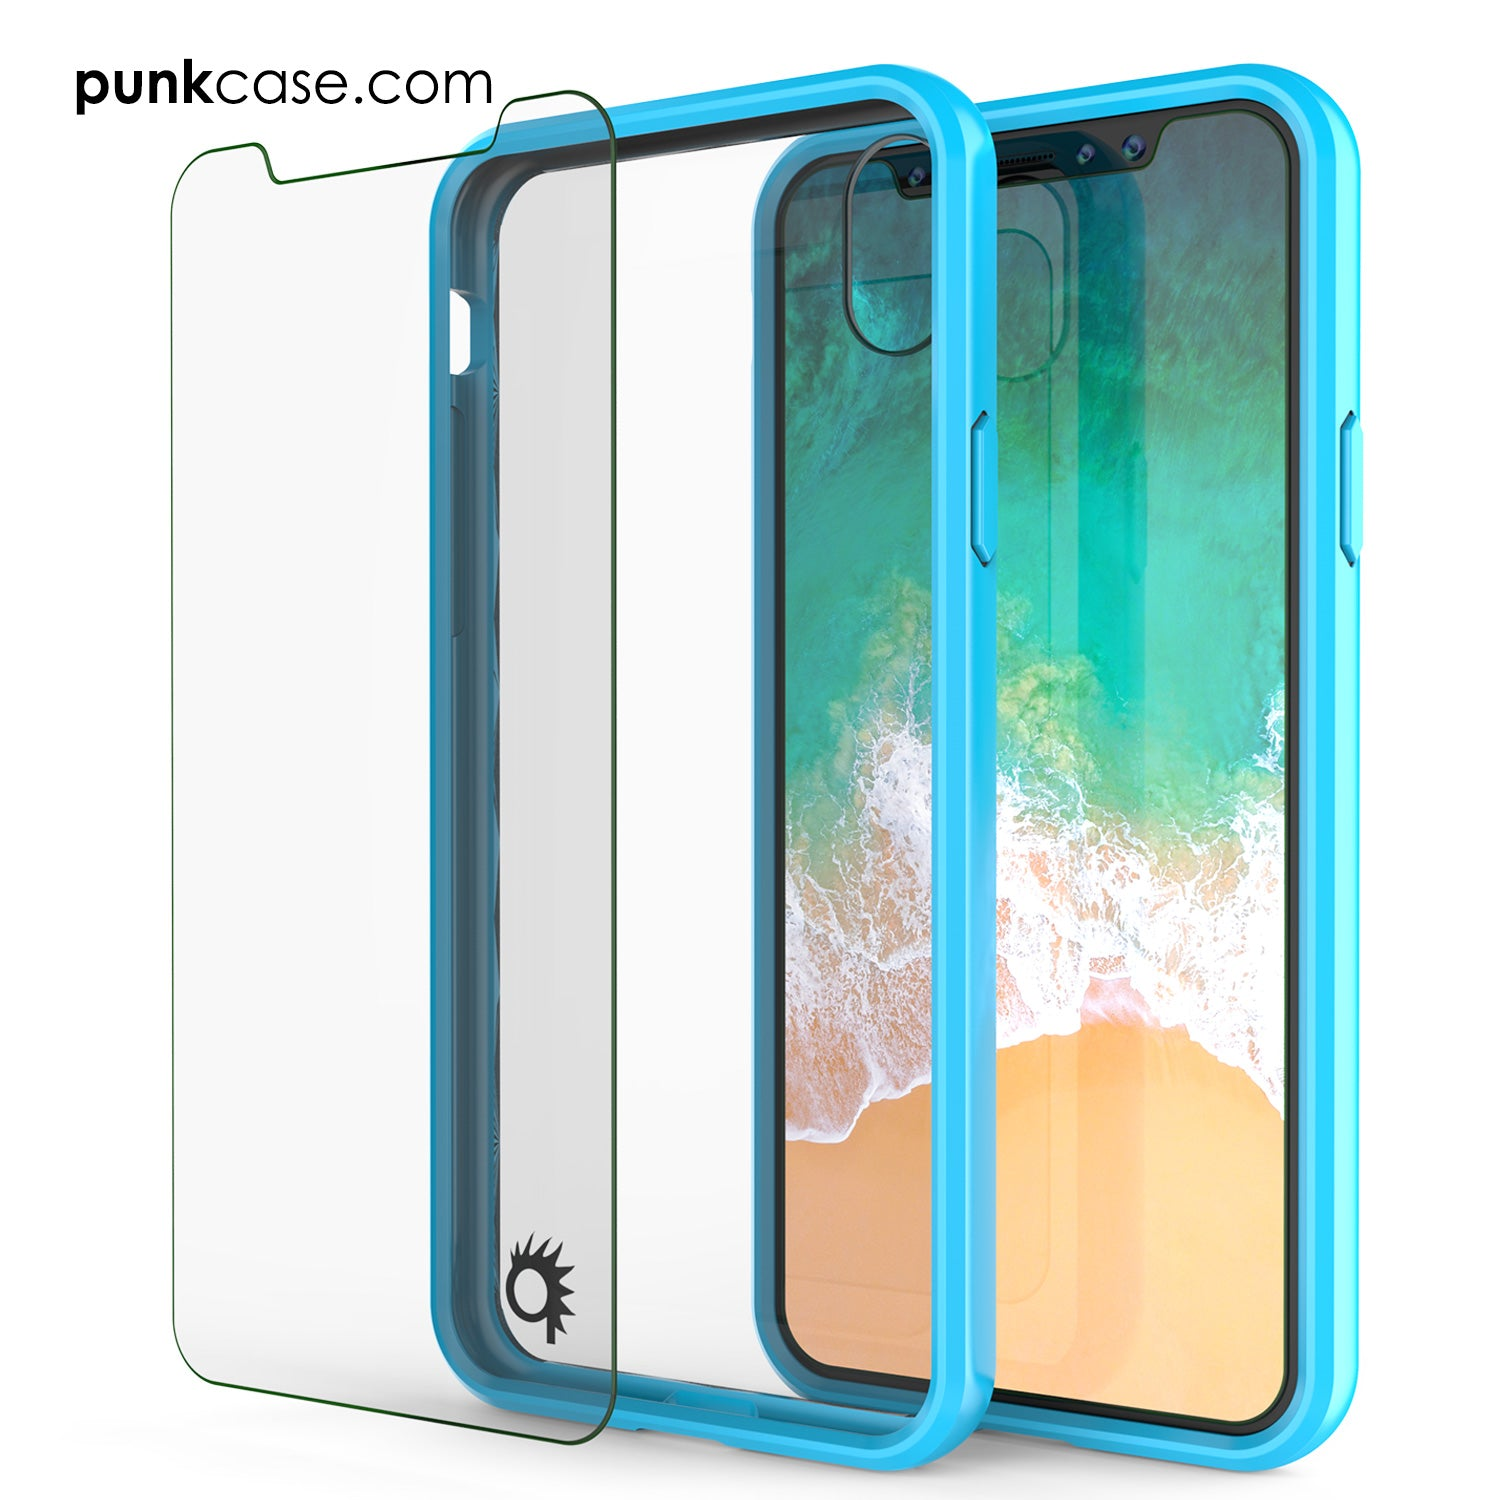 iPhone X Case, PUNKcase [LUCID 2.0 Series] [Slim Fit] Armor Cover W/Integrated Anti-Shock System [Light Blue]